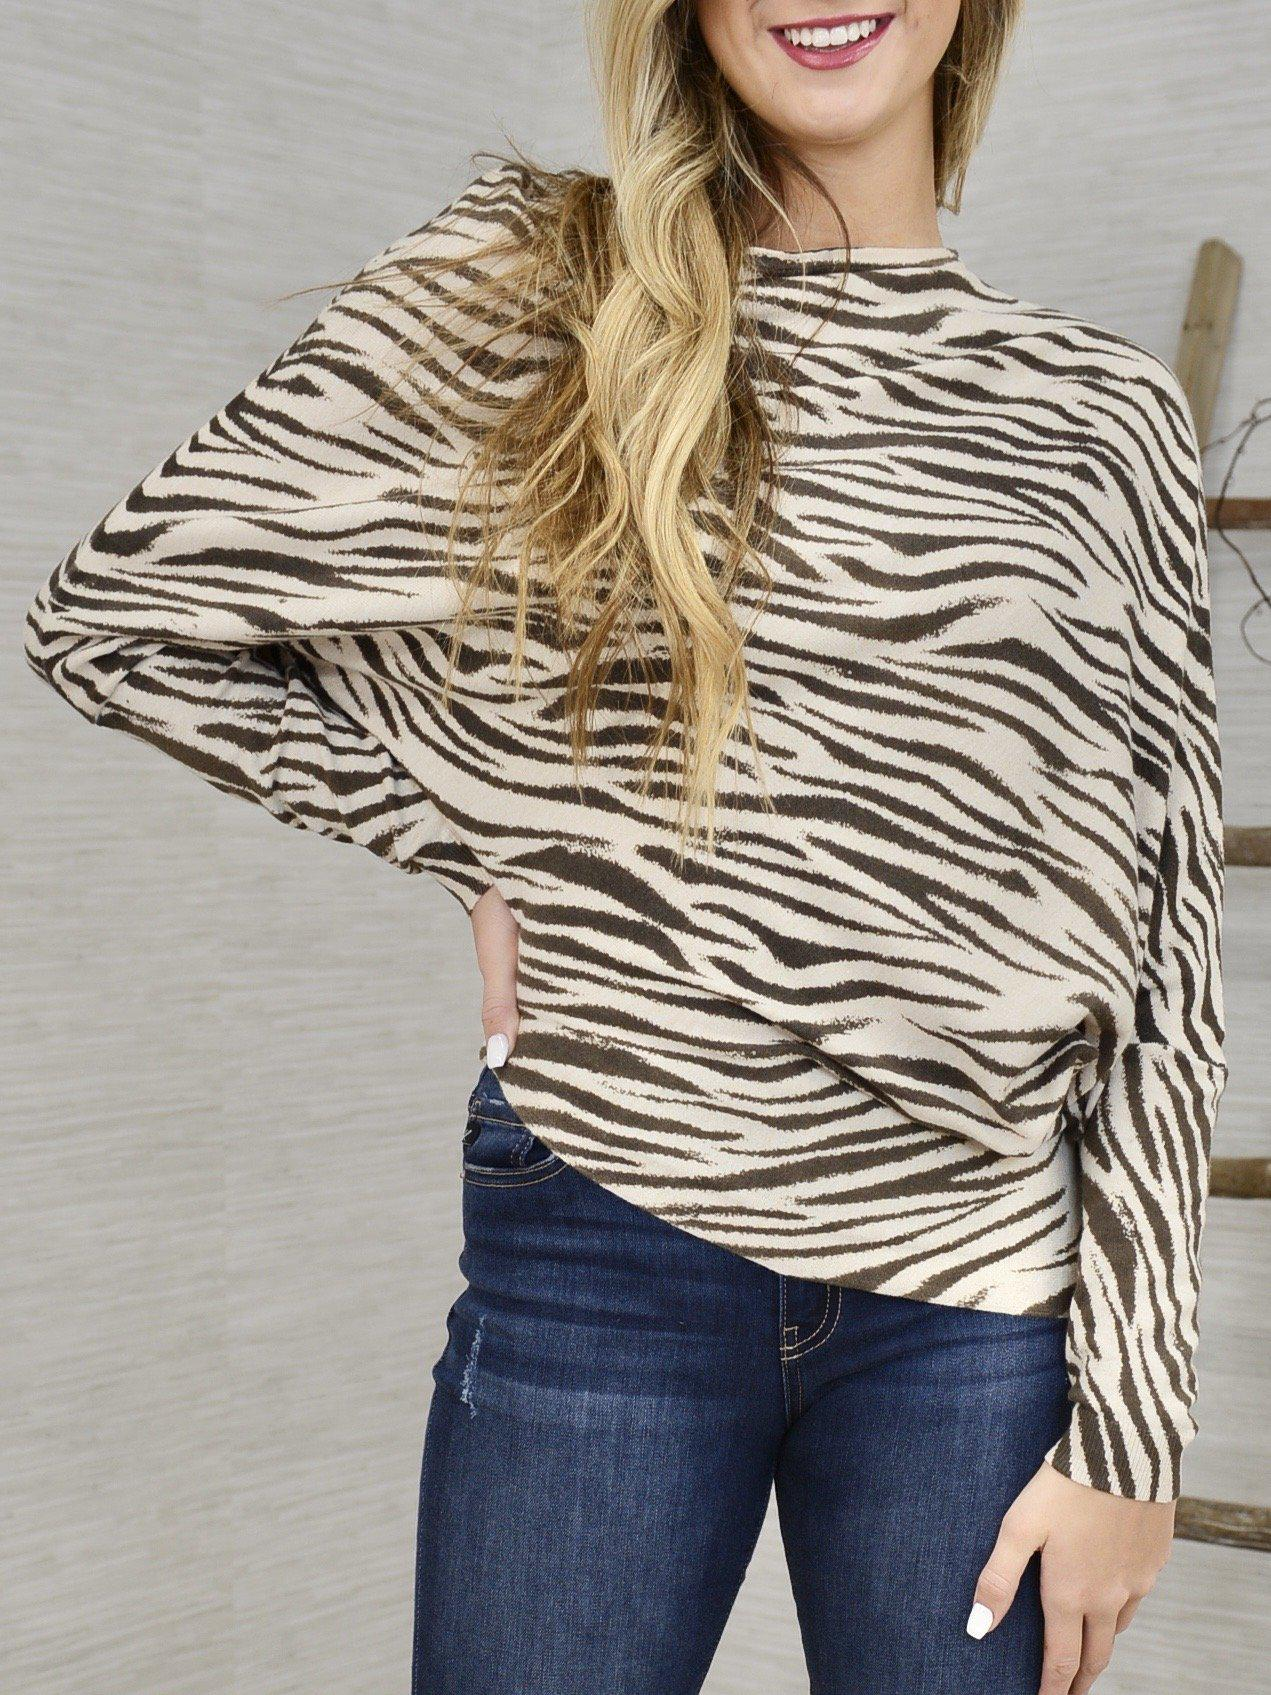 Sahara Quest Top-Women's -New Arrivals-Runway Seven